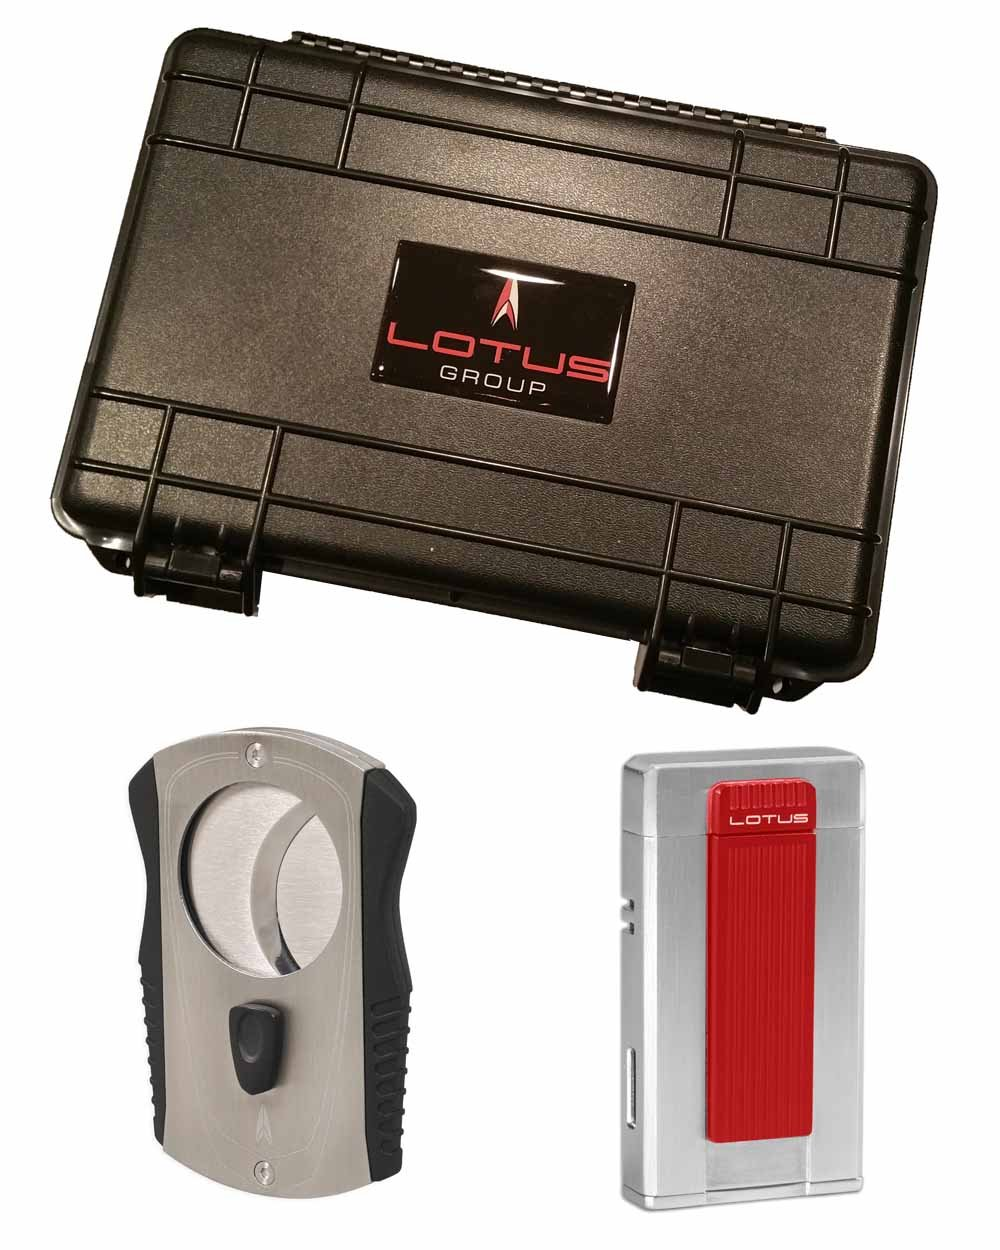 Ambassador Colussus 80 Ring Gauge Cutter Gift Set Red Lighter 5 Count Travel Humidor in an Attractive Gift Box Warranty